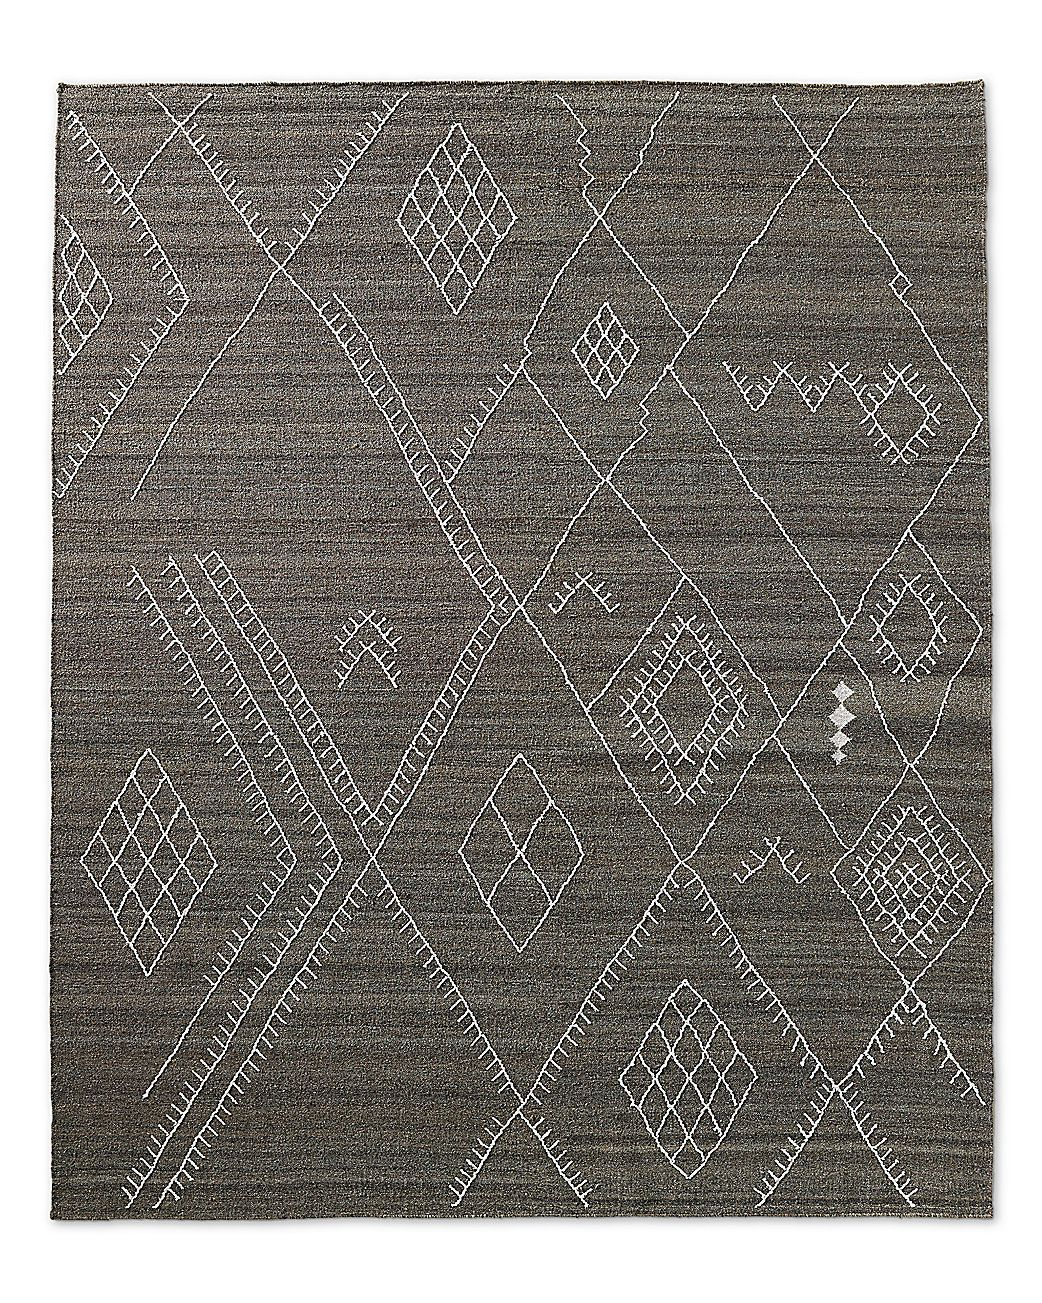 Charcoal Carpet Bedroom Sarto Embroidered Flatweave Rug Charcoal For The Home